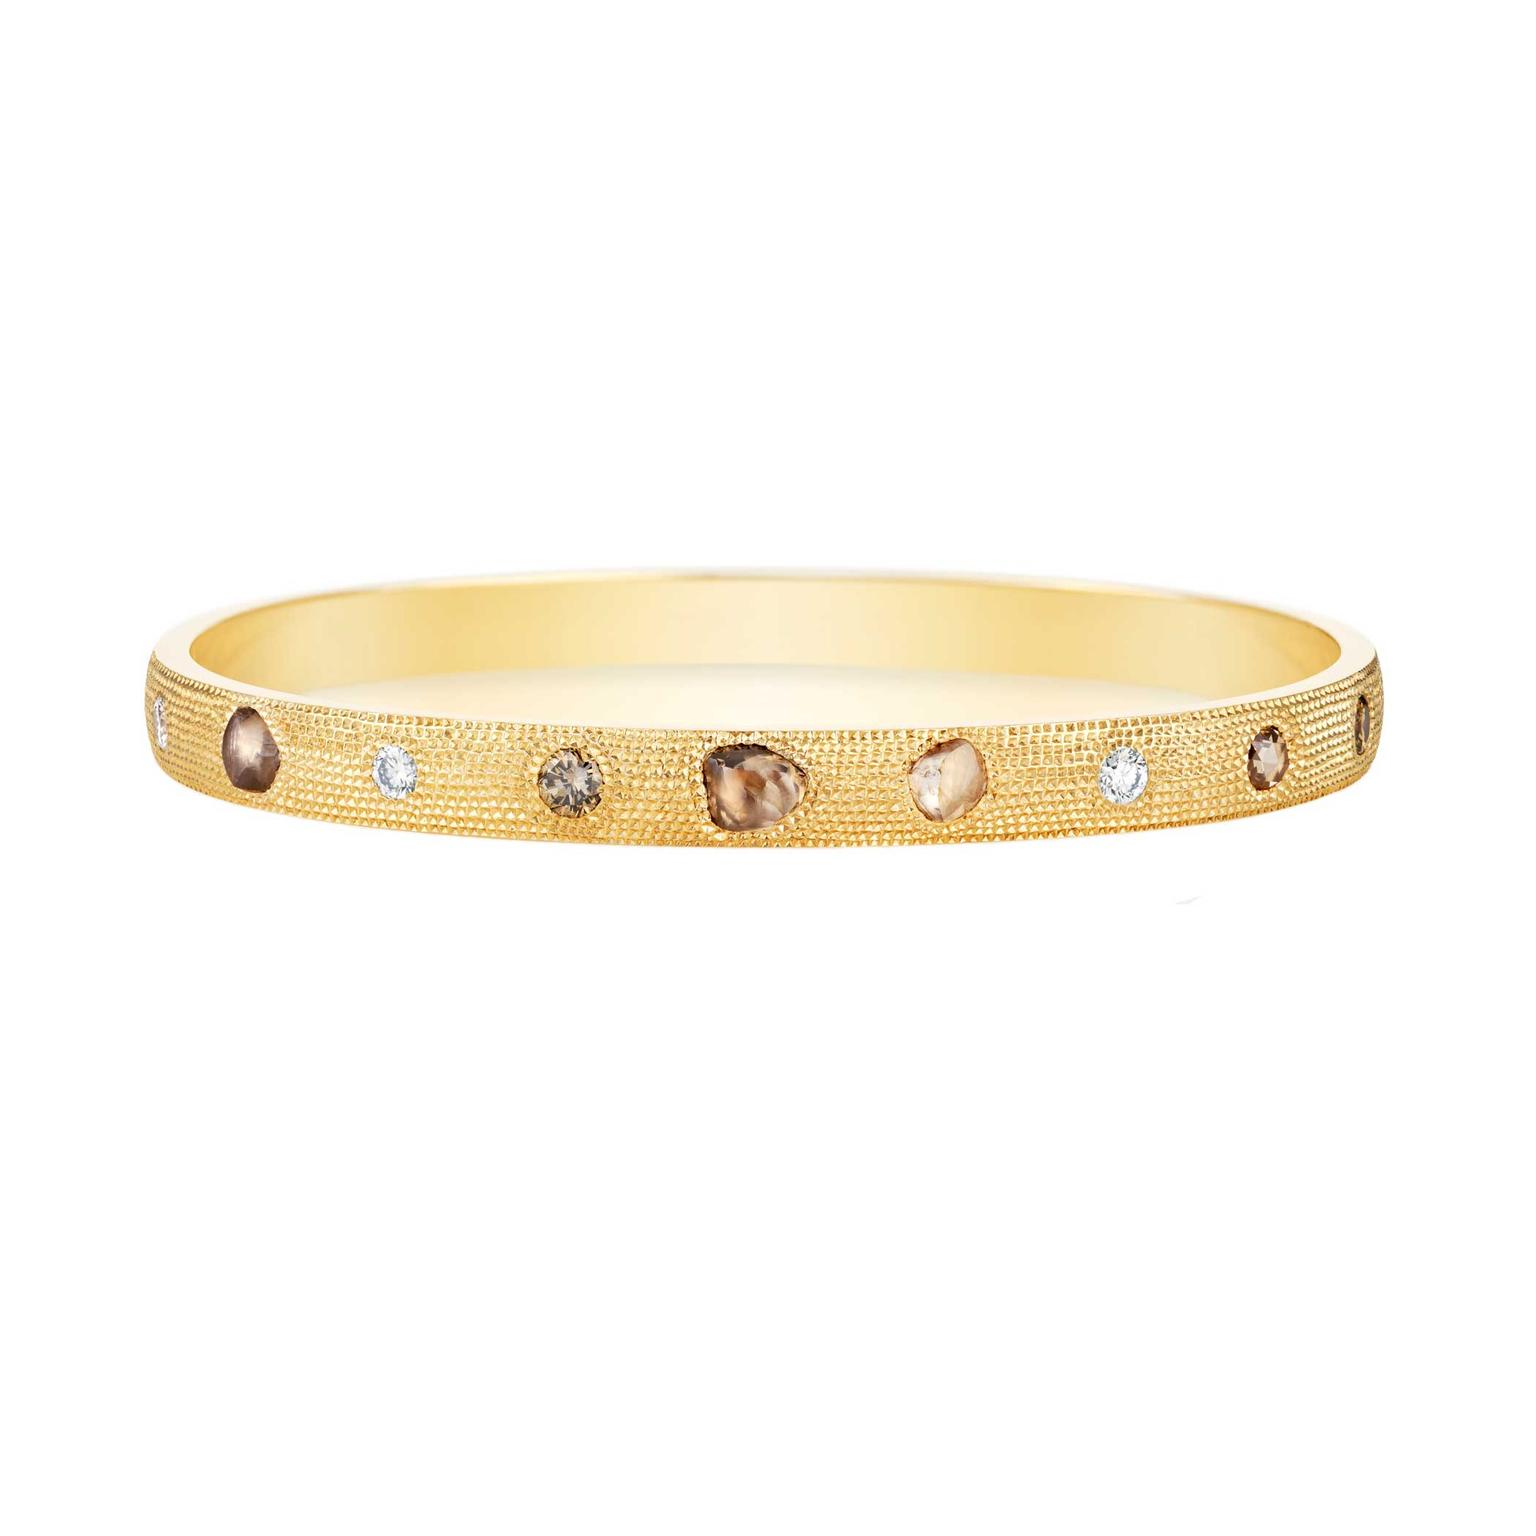 De Beers Talisman rough diamond bracelet